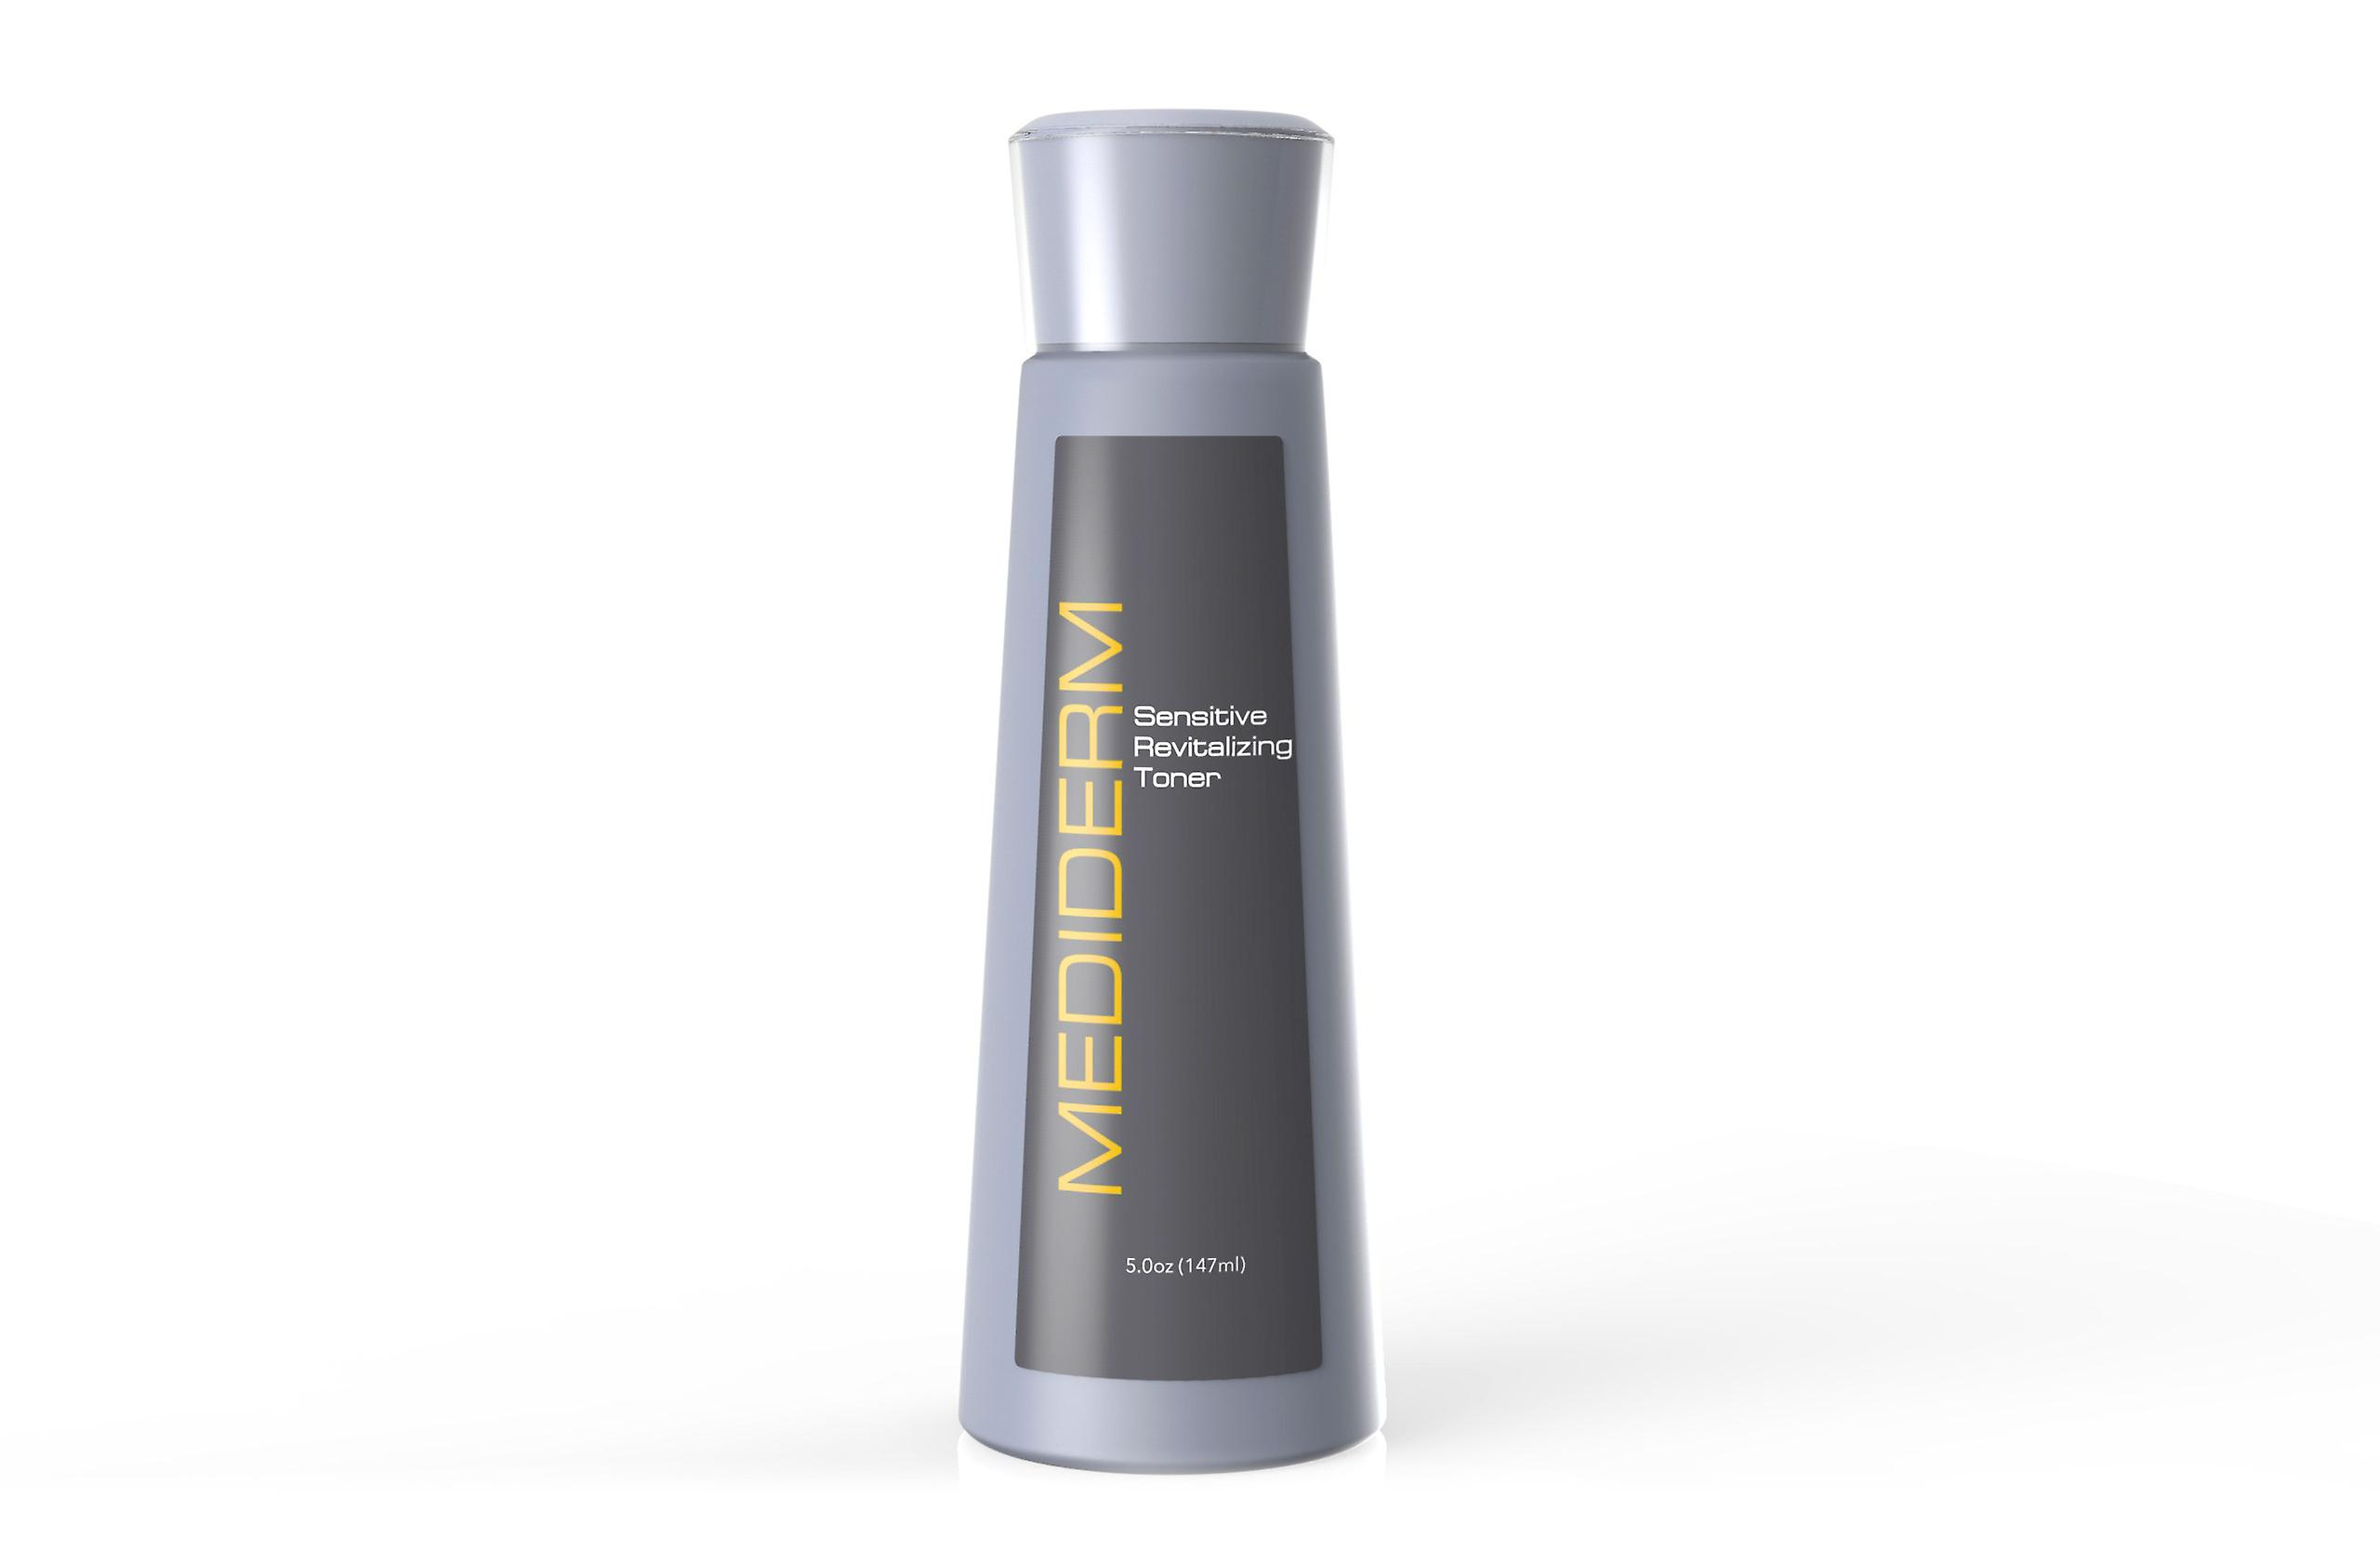 Mediderm Sensitive Revitalizing Toner